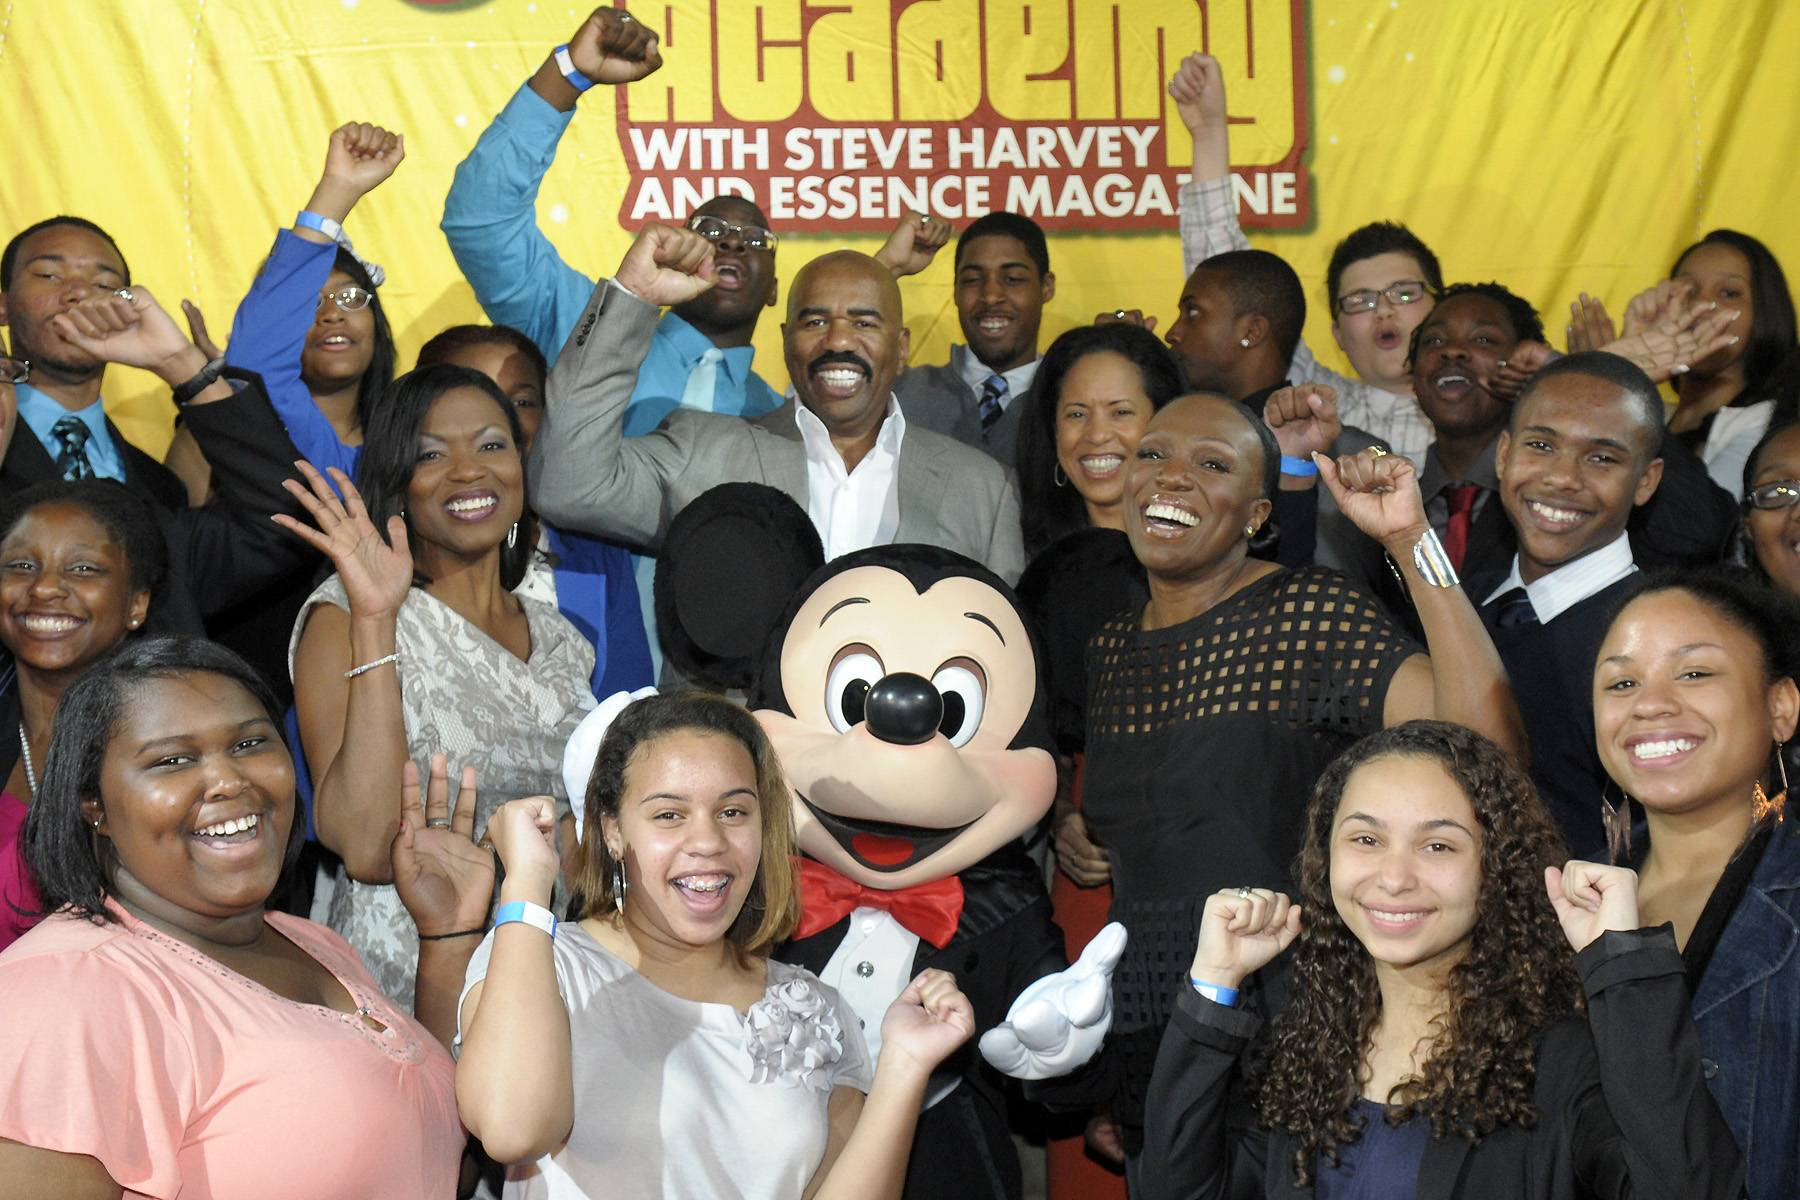 Dreaming Big - One hundred teens from around the country were invited to be part of the 5th annualDisney?s Dreamers Academy. Hosted by Steve Harvey and Essence magazine, the four-day conference helped high school students refine their goals and gain self-confidence while they attended innovative career workshops led by celebrity guests and top industry experts. BET.comlooks back at their incredible journey.?Britt Middleton(Photo: Phelan Ebenhack).